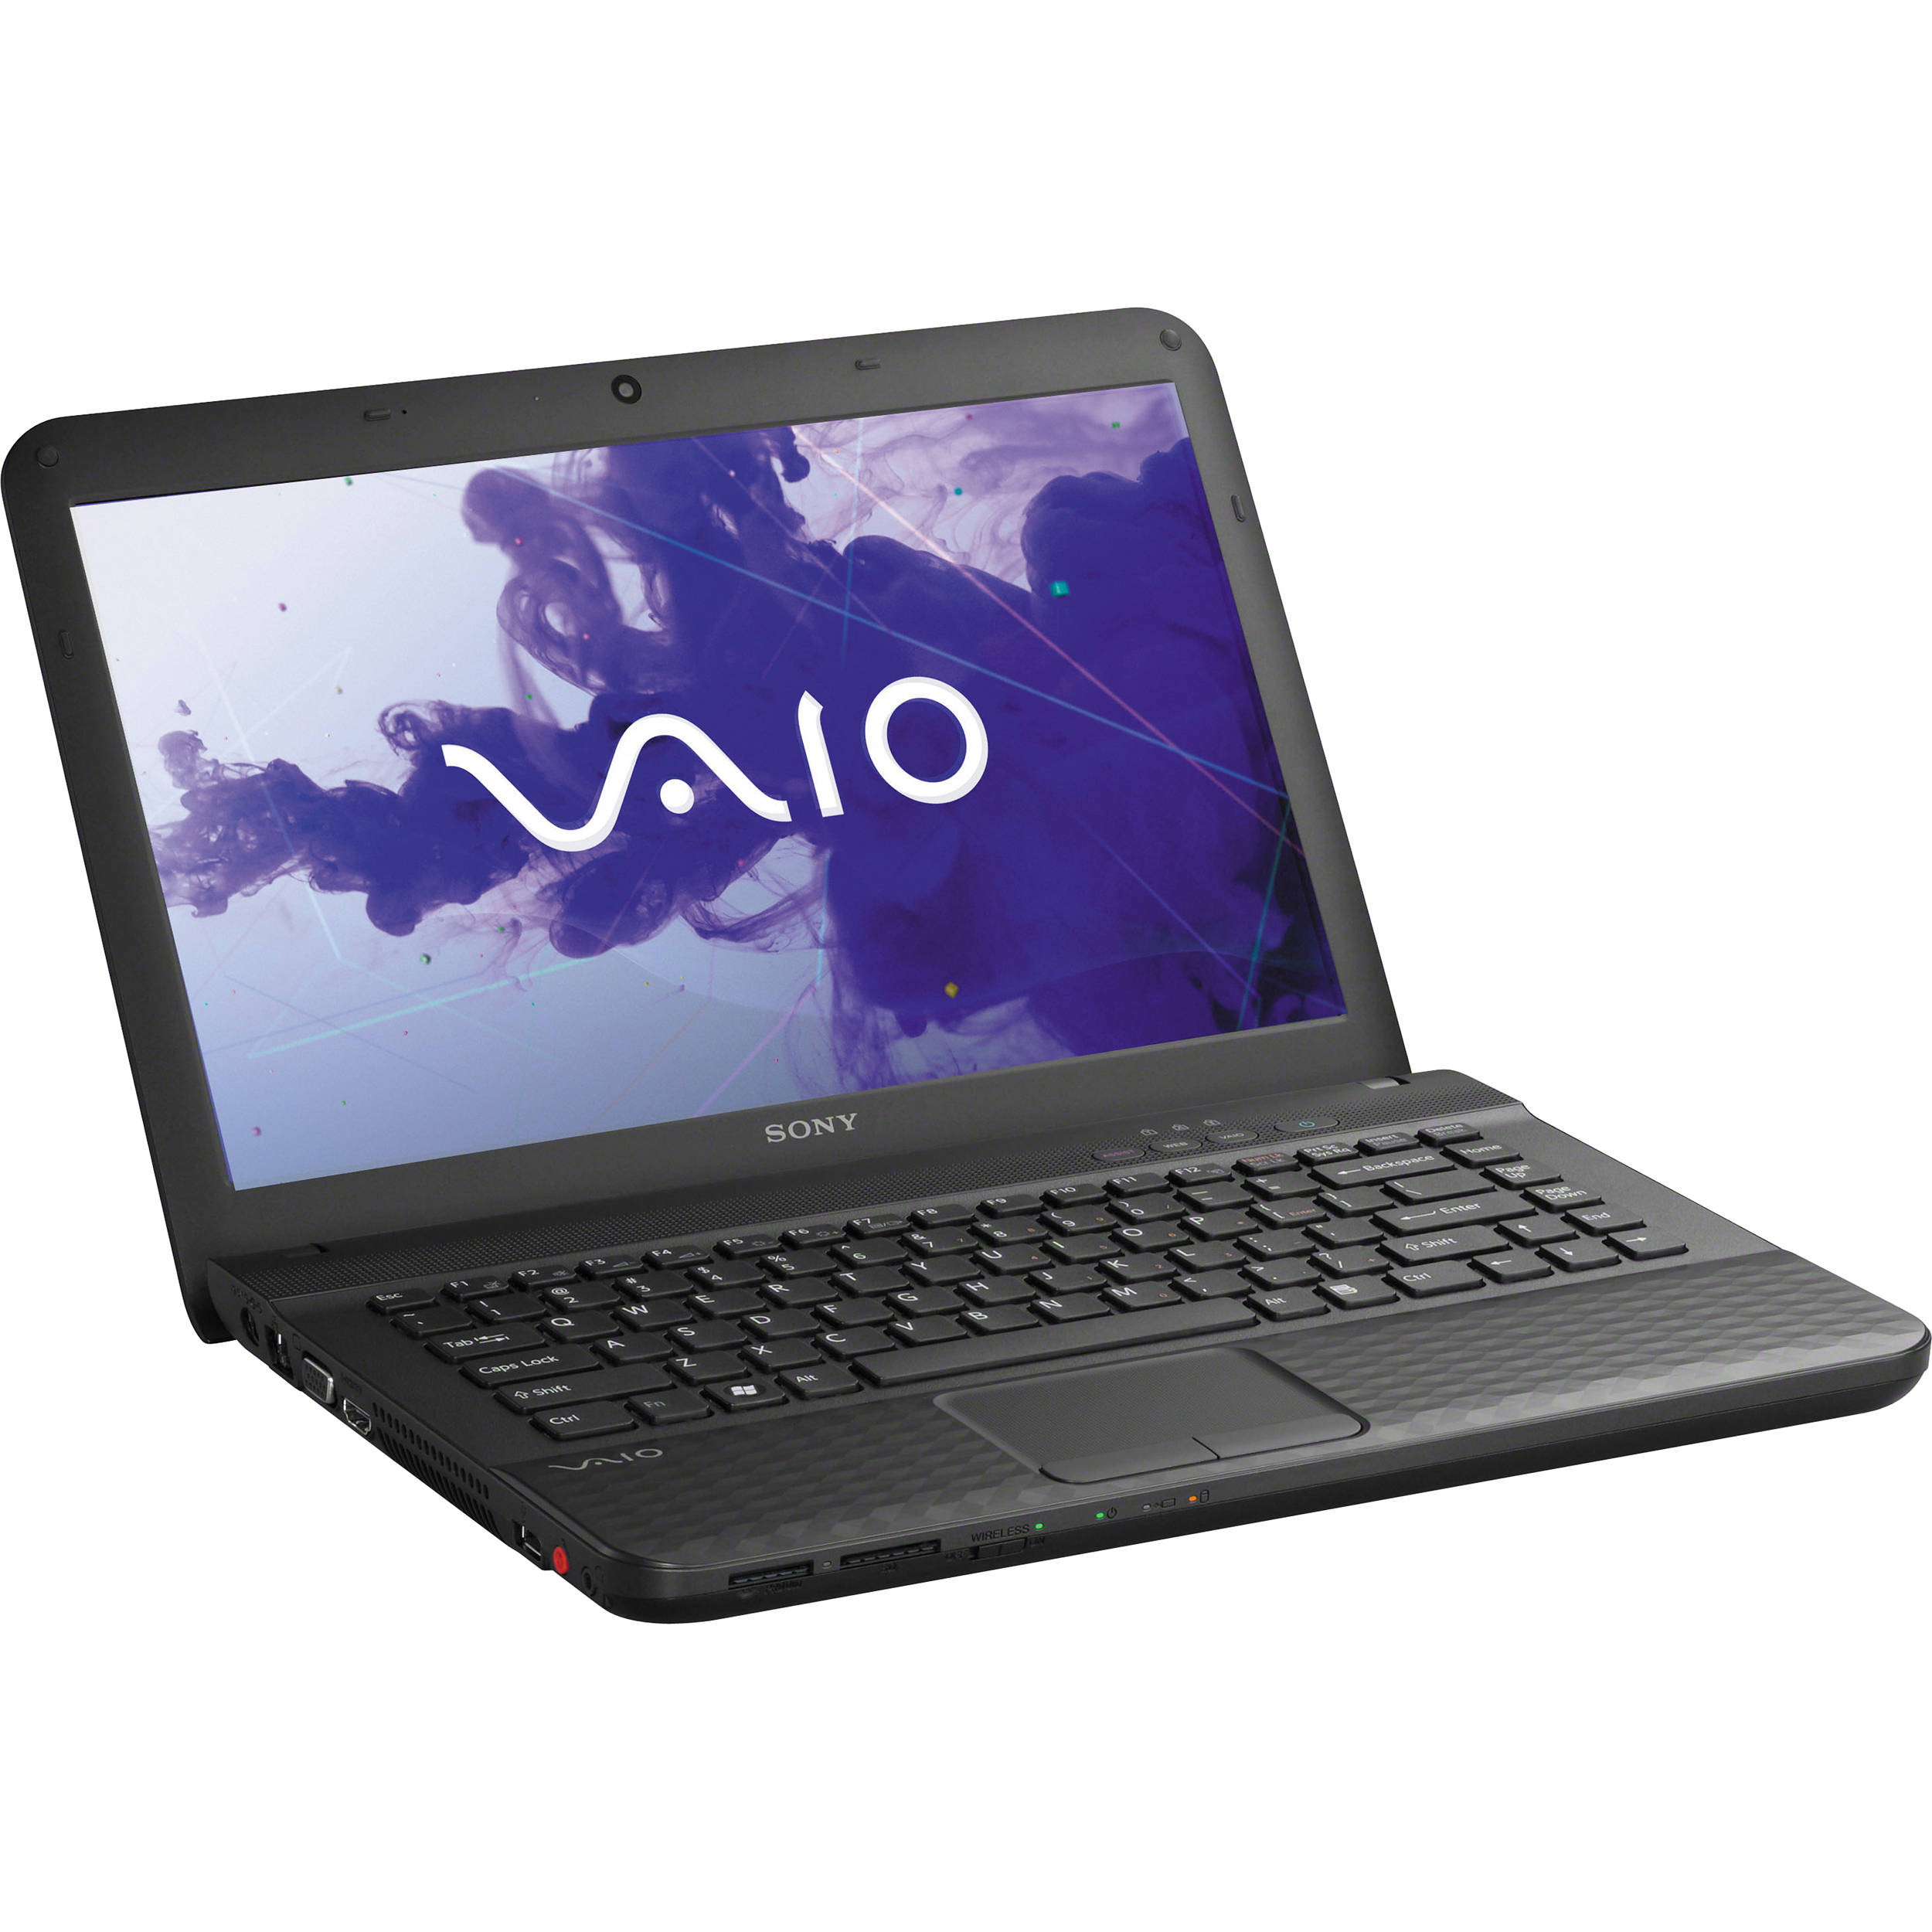 Sony Vaio VPCEG36FXW Intel WiDi Drivers for Windows 7